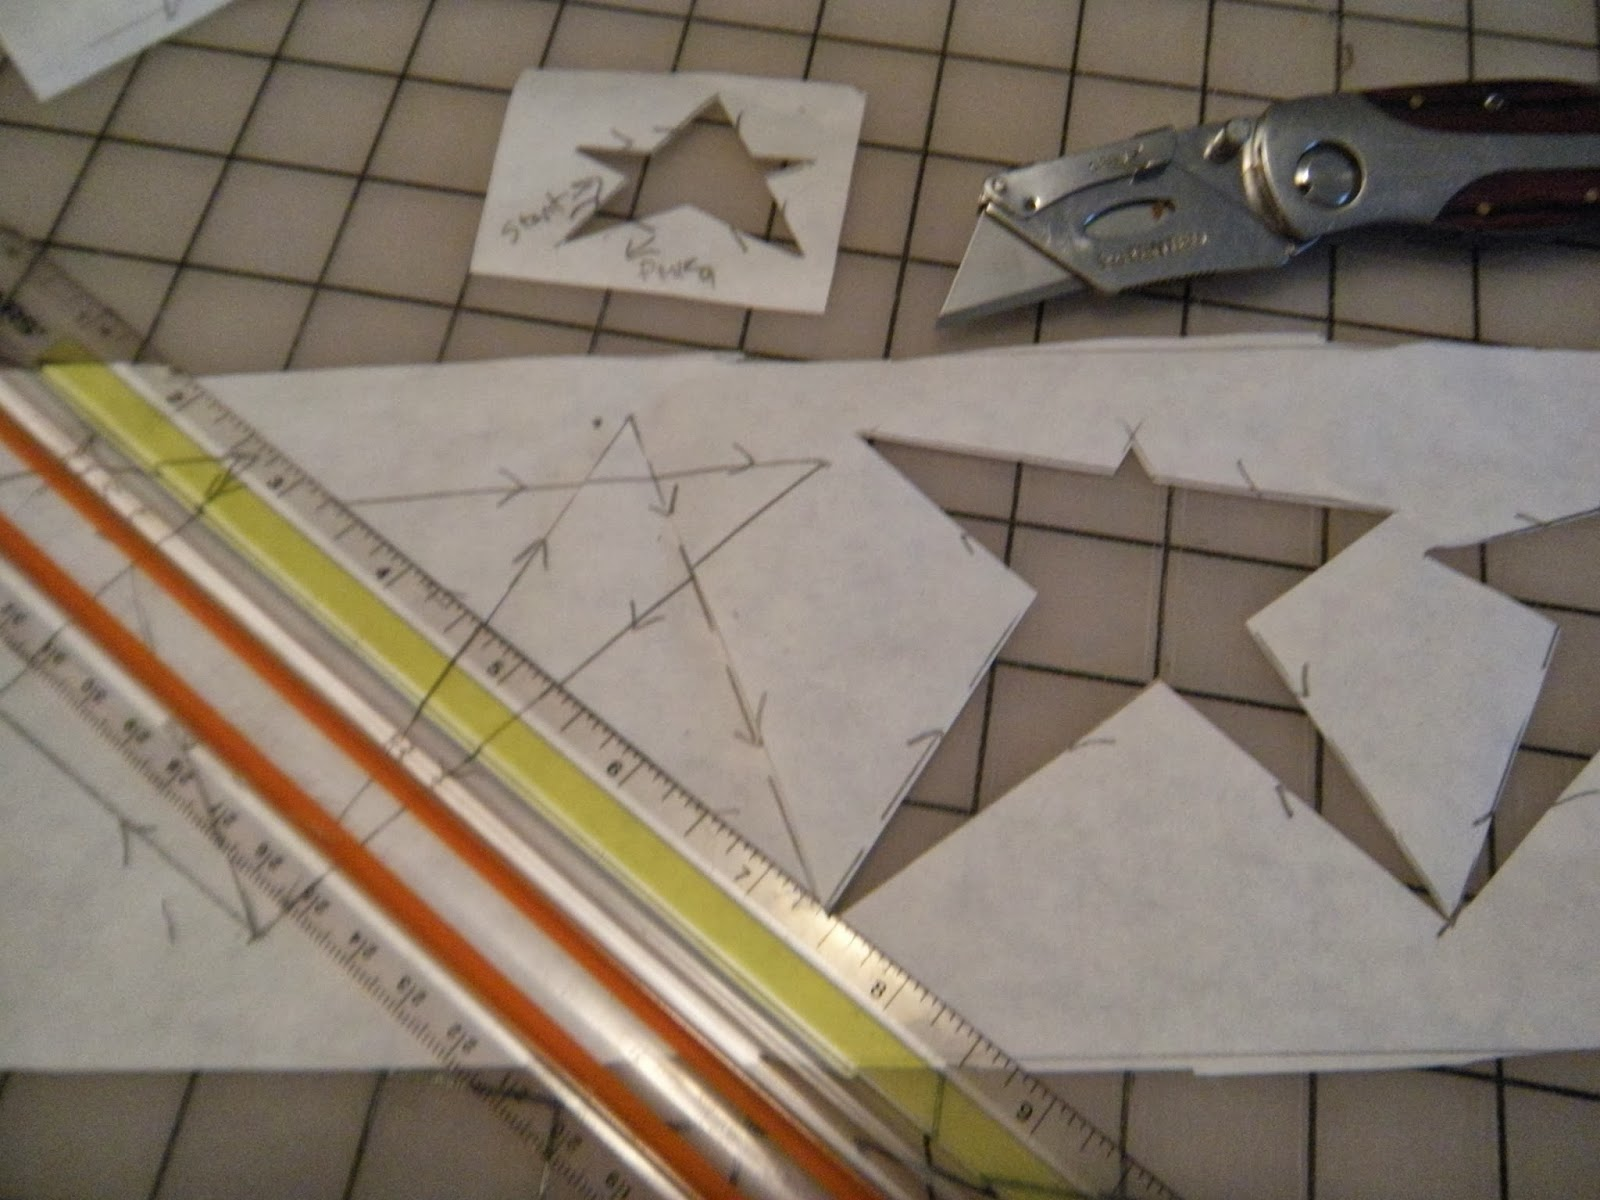 Paper Quilting Templates | Life In The Scrapatch Quilting With Freezer Paper Templates